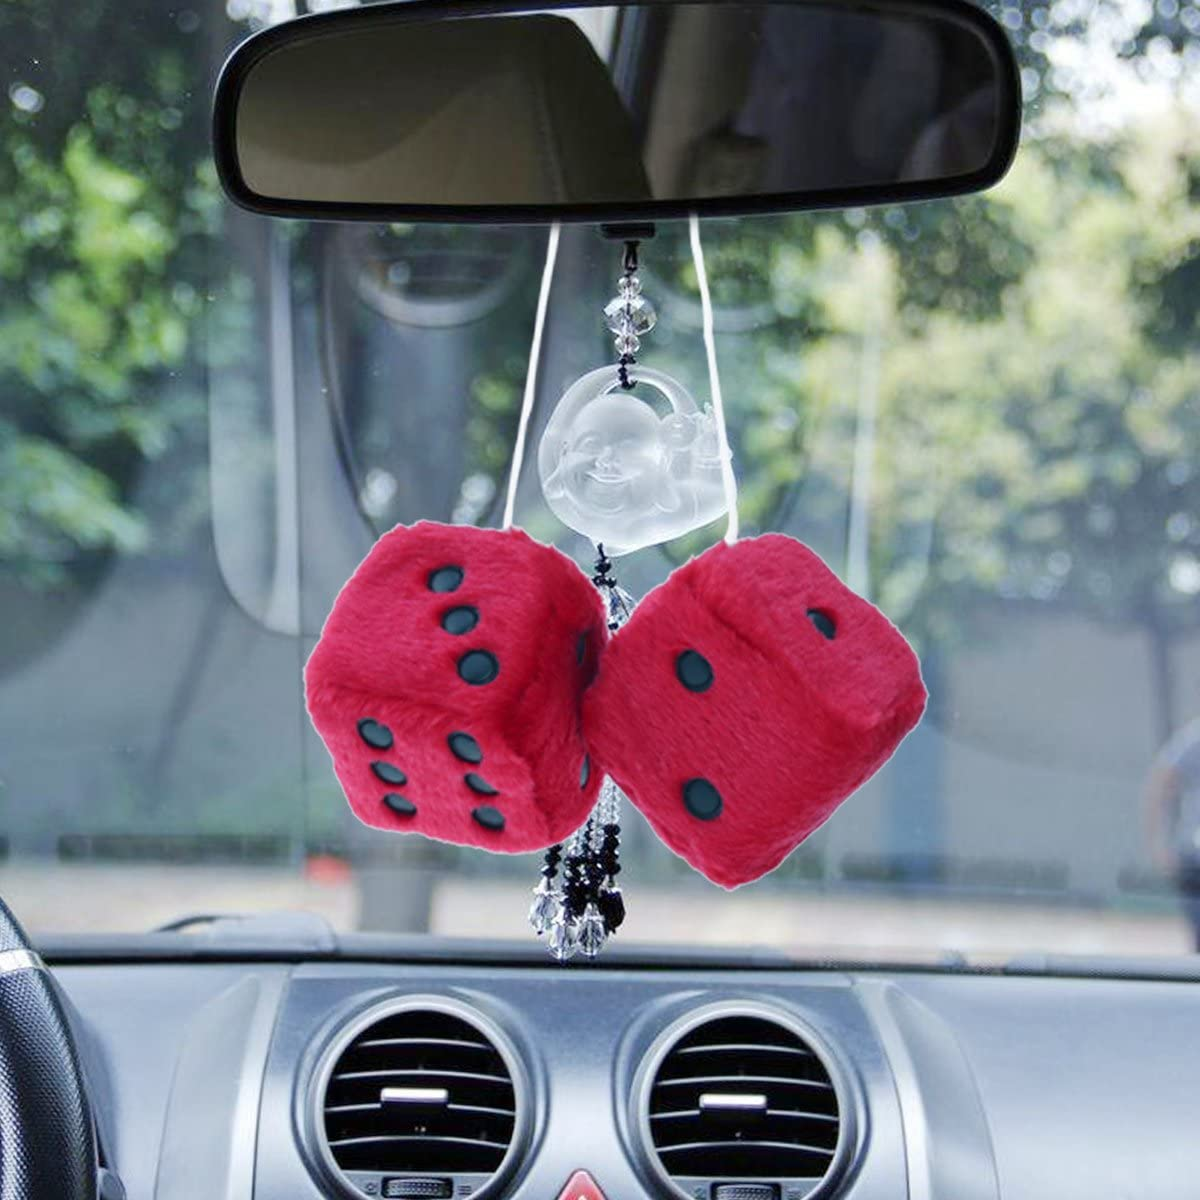 Car Mirror Hanging Fluffy Car Dice Furry Fuzzy Plush Key Chain Ornaments White